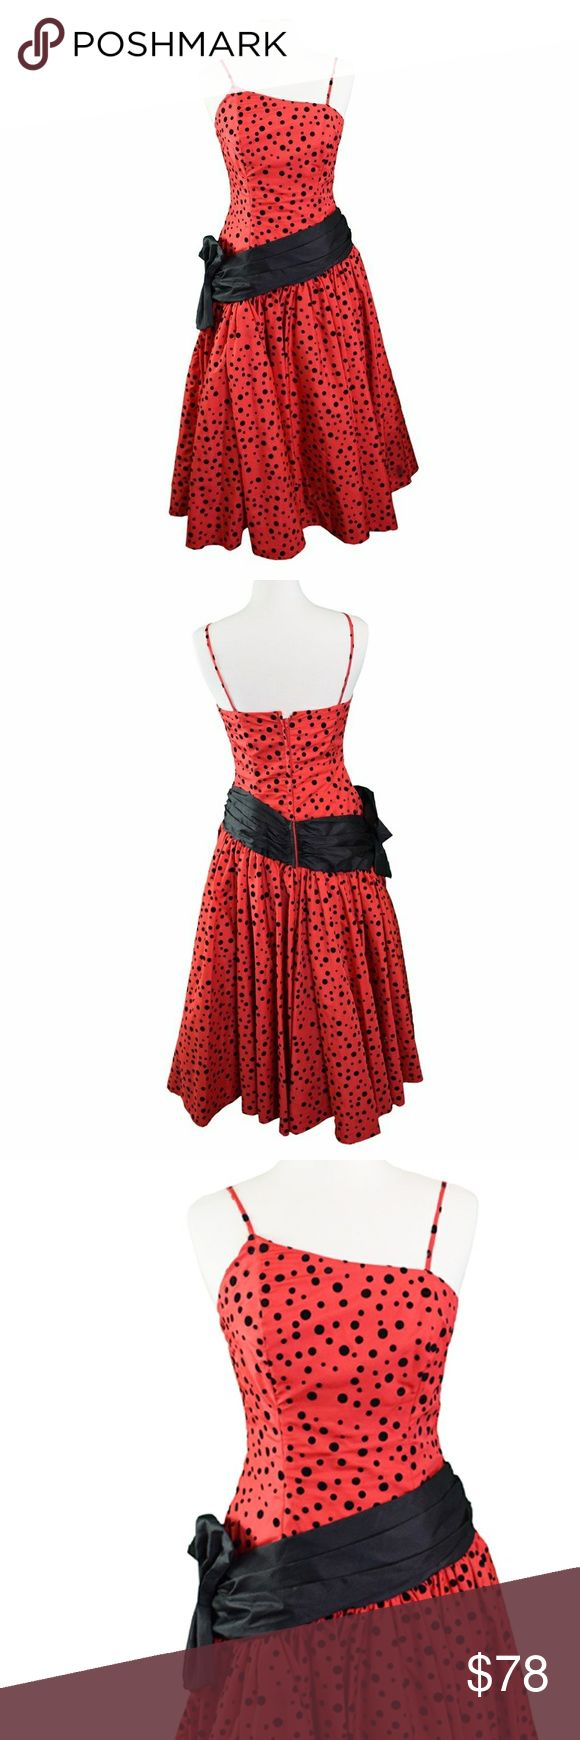 """Vintage 1980's Red and Black Formal Dress Perfect for V-Day! Vintage red dress w/ black applique polka dots. Asymmetrical neckline, structured bodice, drop waist, and side bow! Full skirt w/ a black petticoat. Small stain on the front below the bow. Two of the polka dots are missing on the bottom right of the skirt & there is some bleeding (see photo).The flaws are hardly noticeable b/c of how the skirt falls, unless inspected closely. Union-made. Size 8, Ankle length on me & I am 5'2"""", so…"""